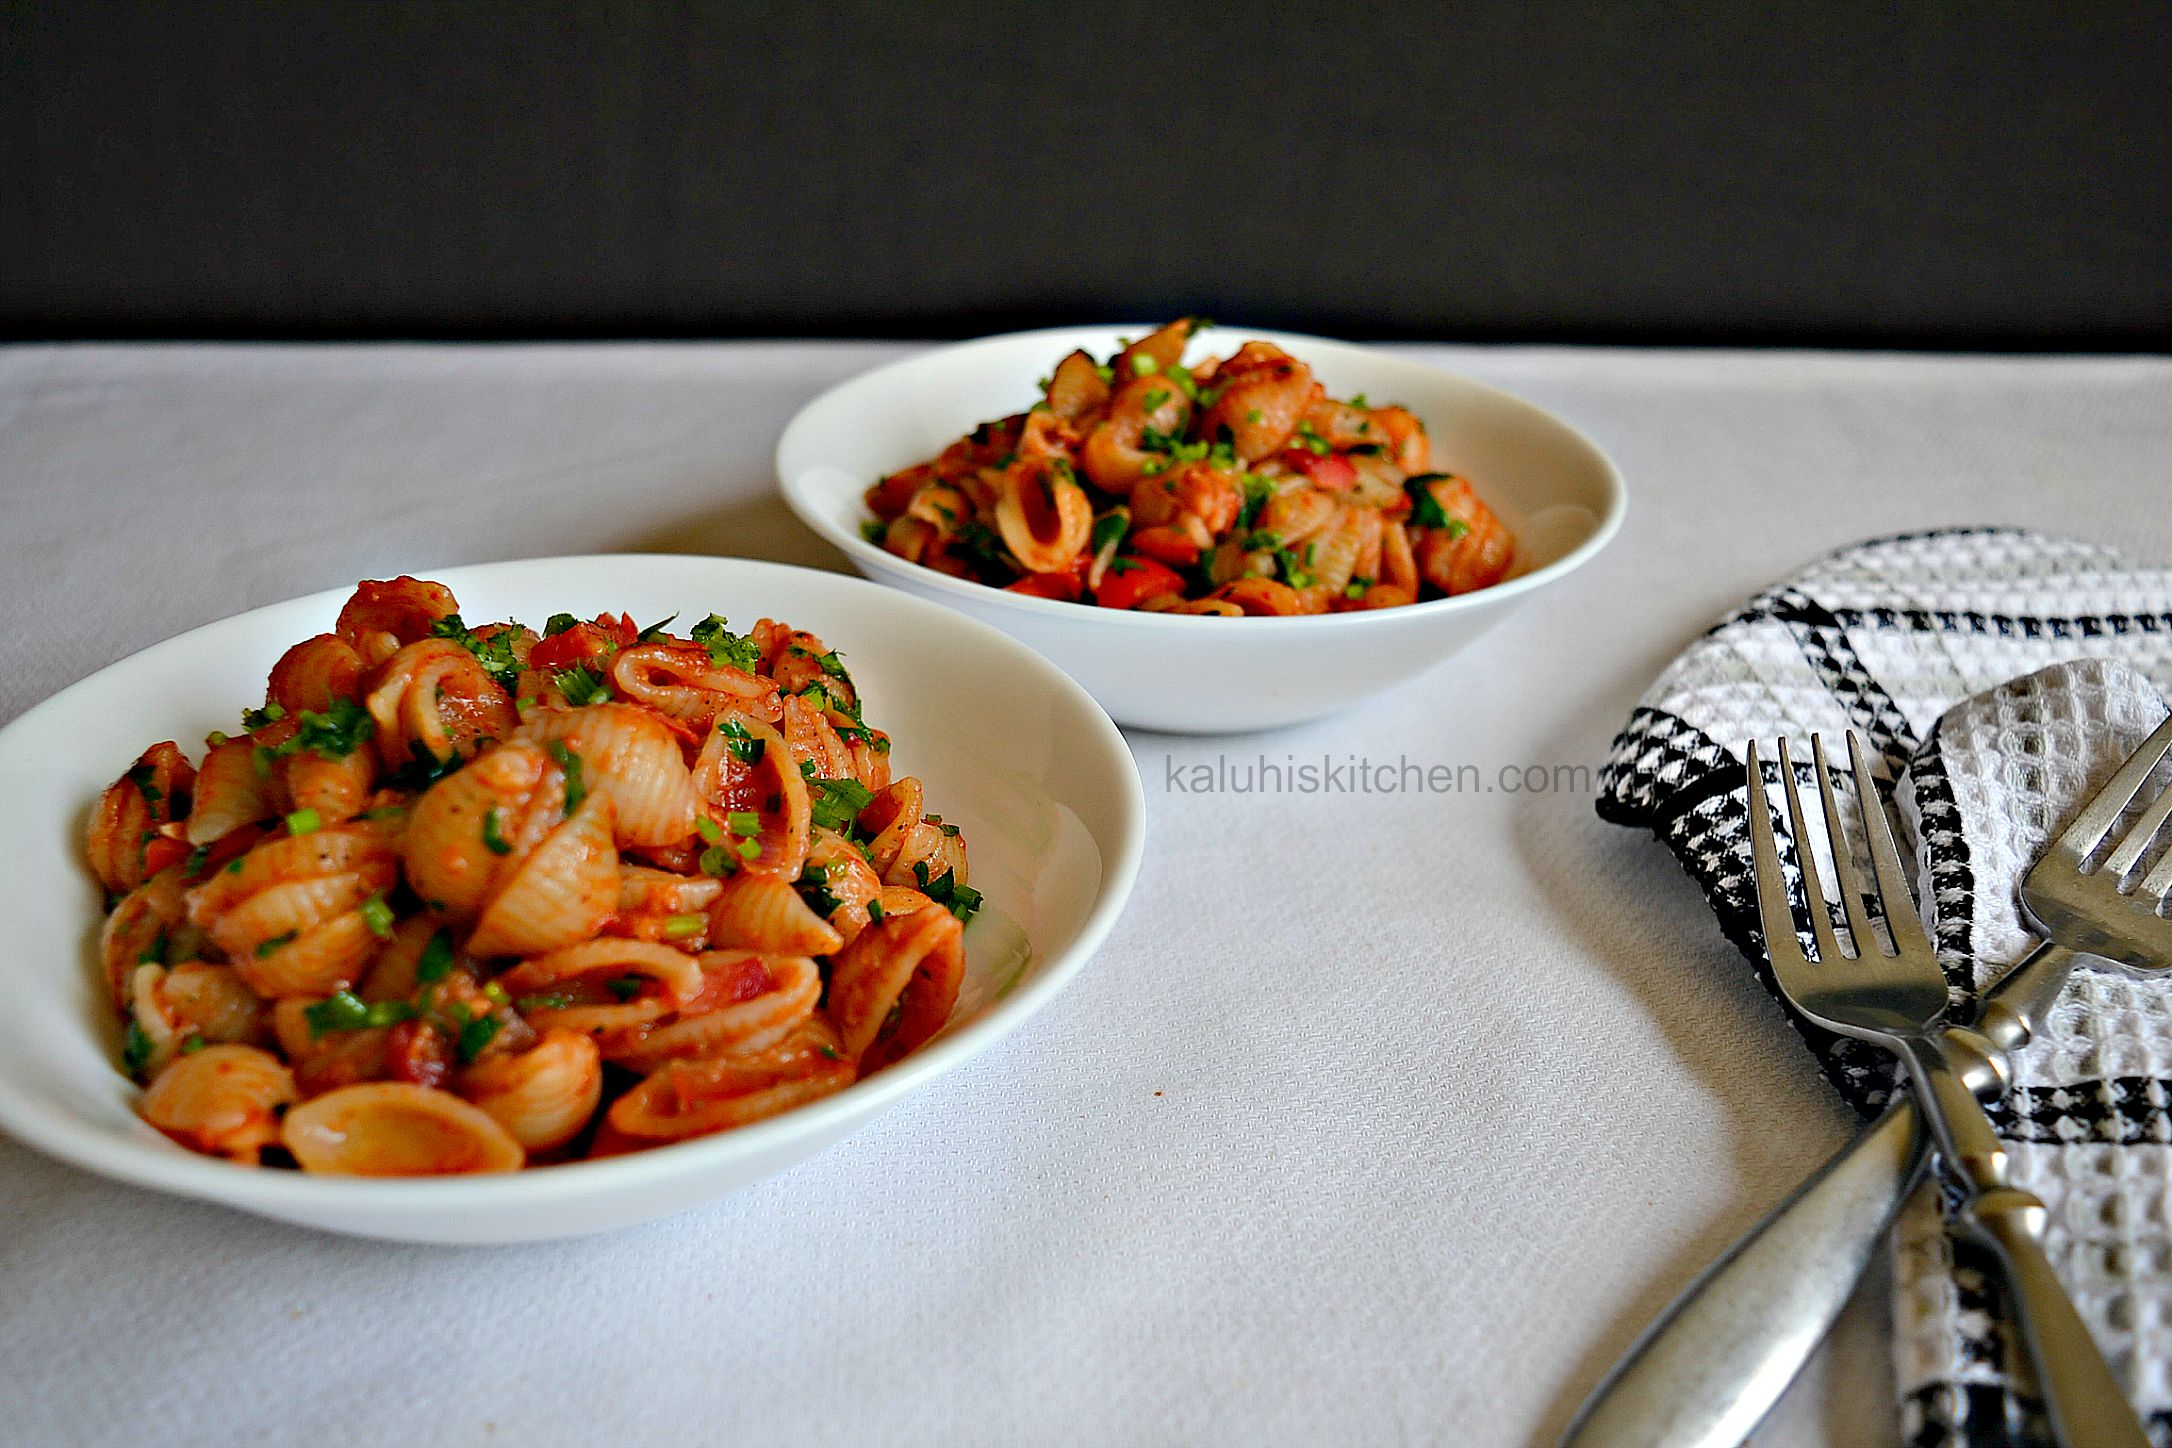 kenyan food bloggers_top kenyan food bloggers_red wine and tomato cheesy pasta_kaluhiskitchen.com